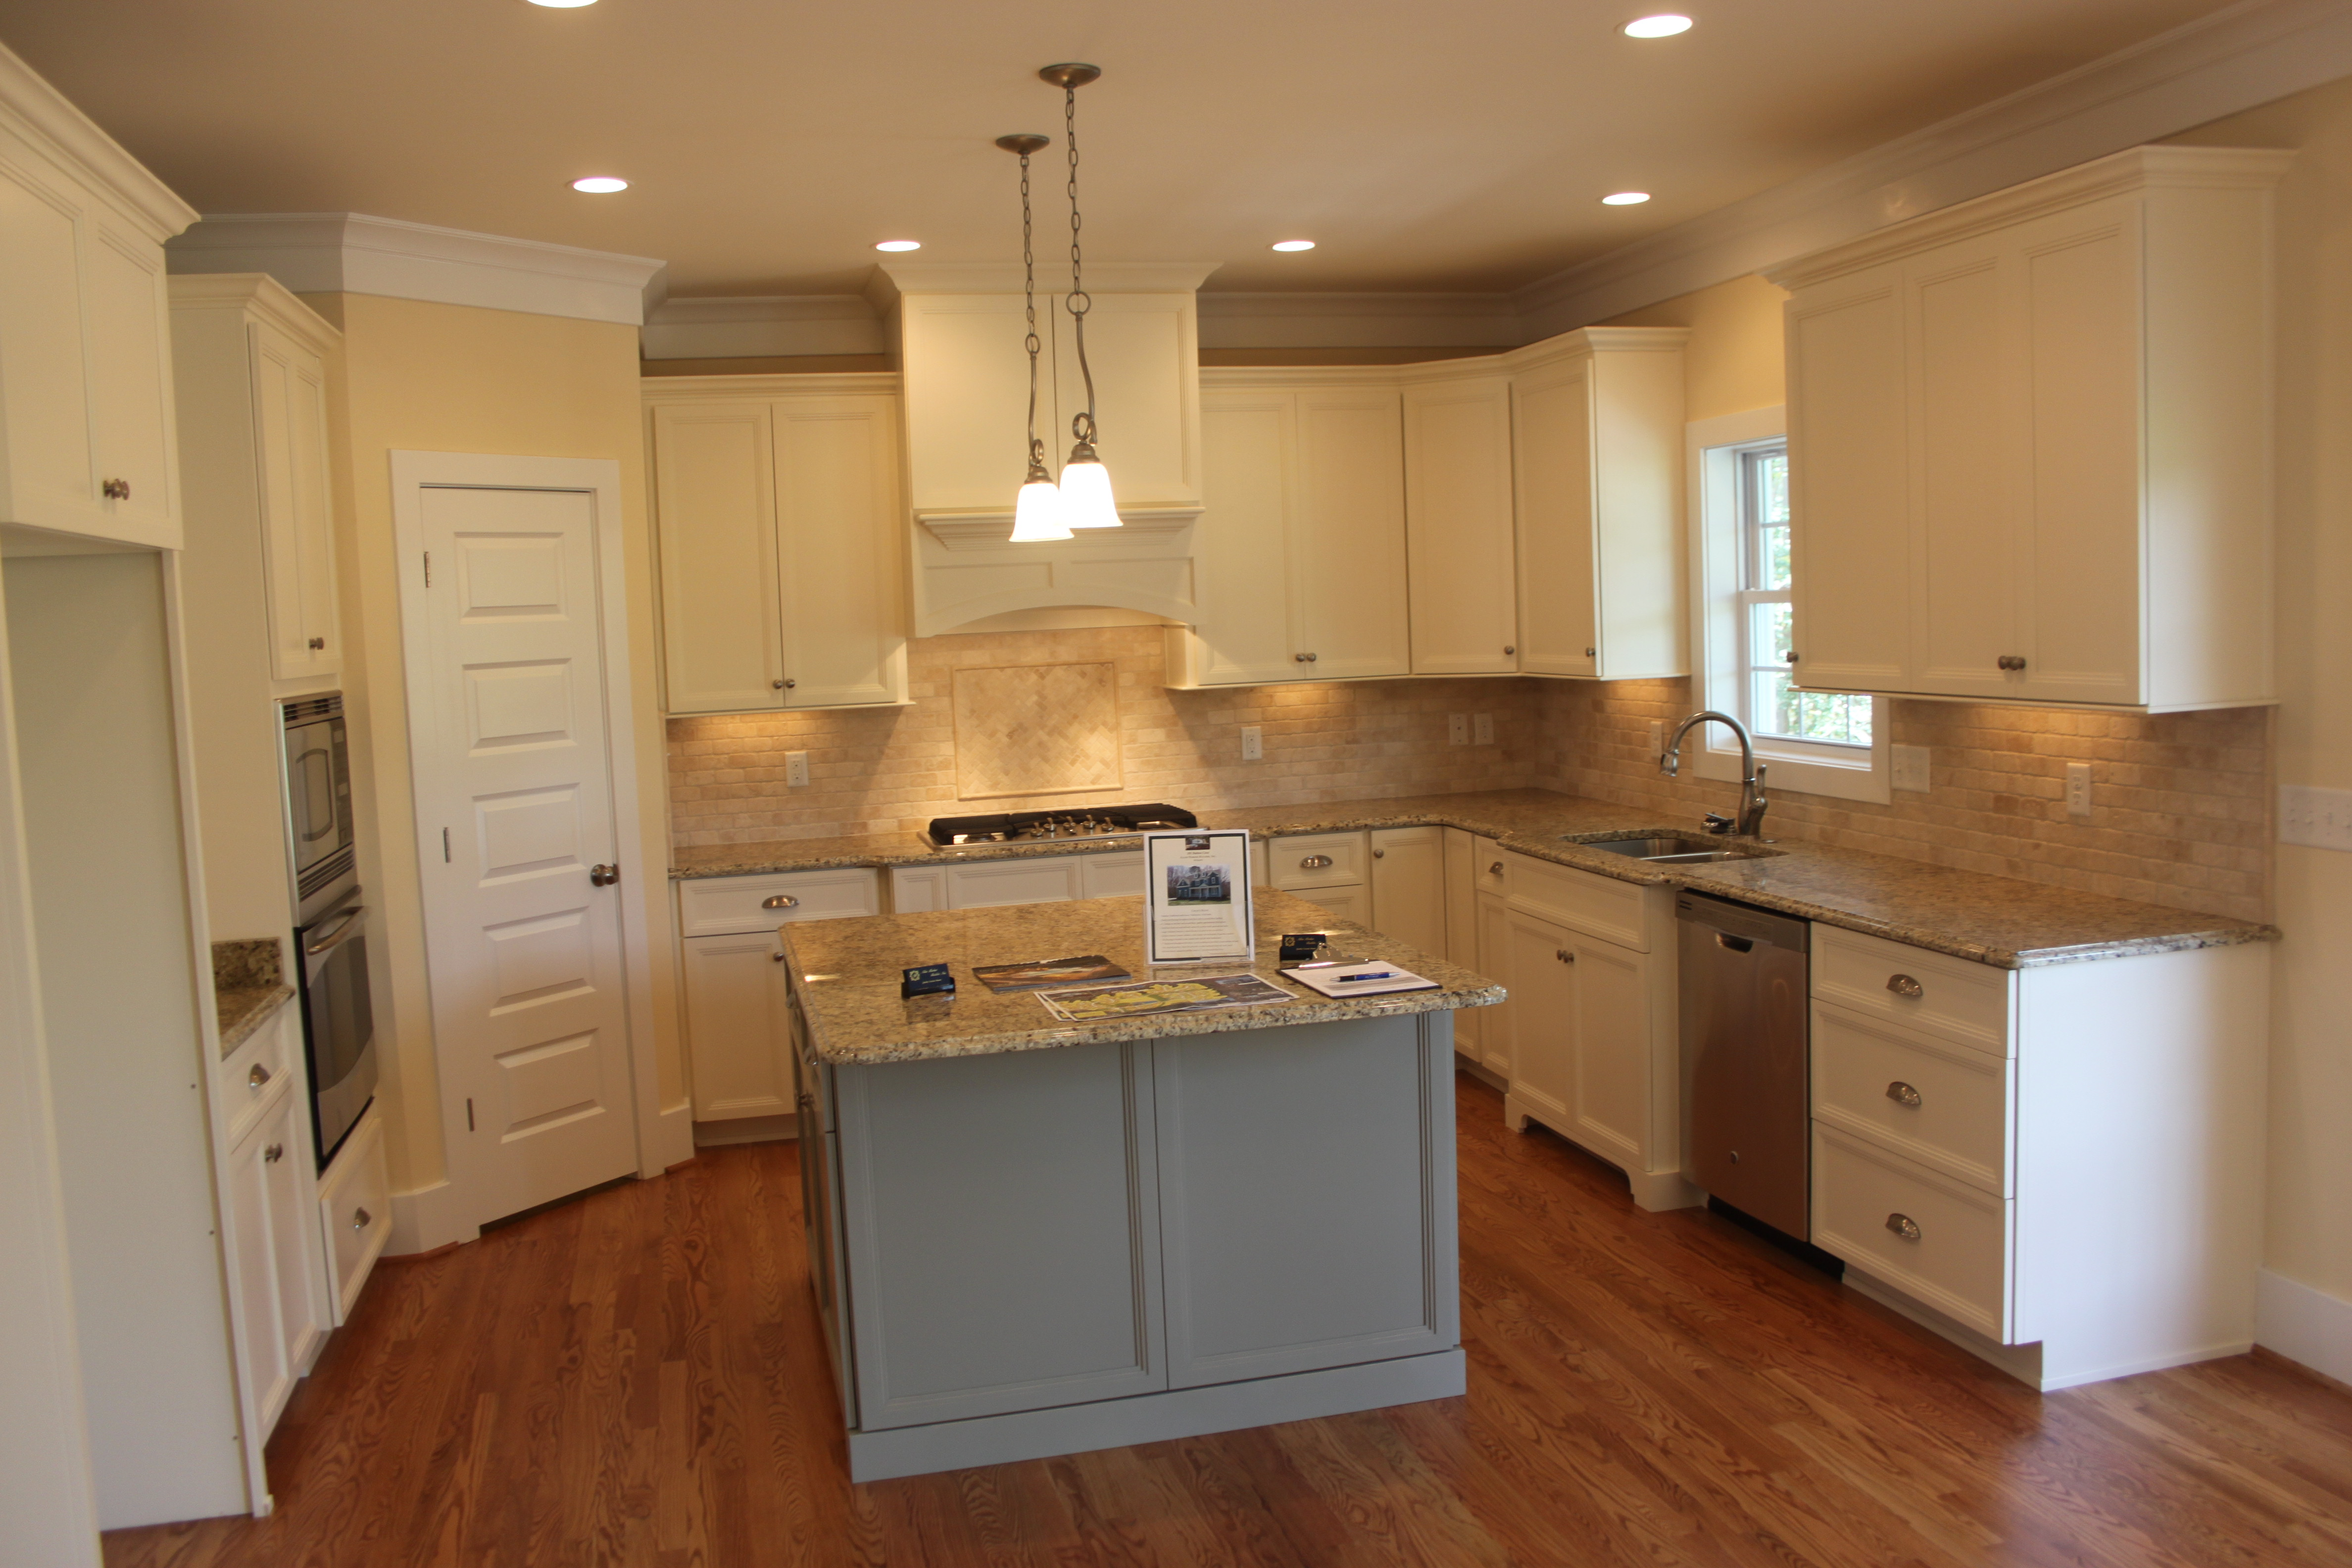 price reduced two featured models allen parker builder hampton bay kitchen cabinets The second model by Allen Parker Builder Inc is the timeless Traditional home pictured below is now SOLD and located on Settler s Ridge